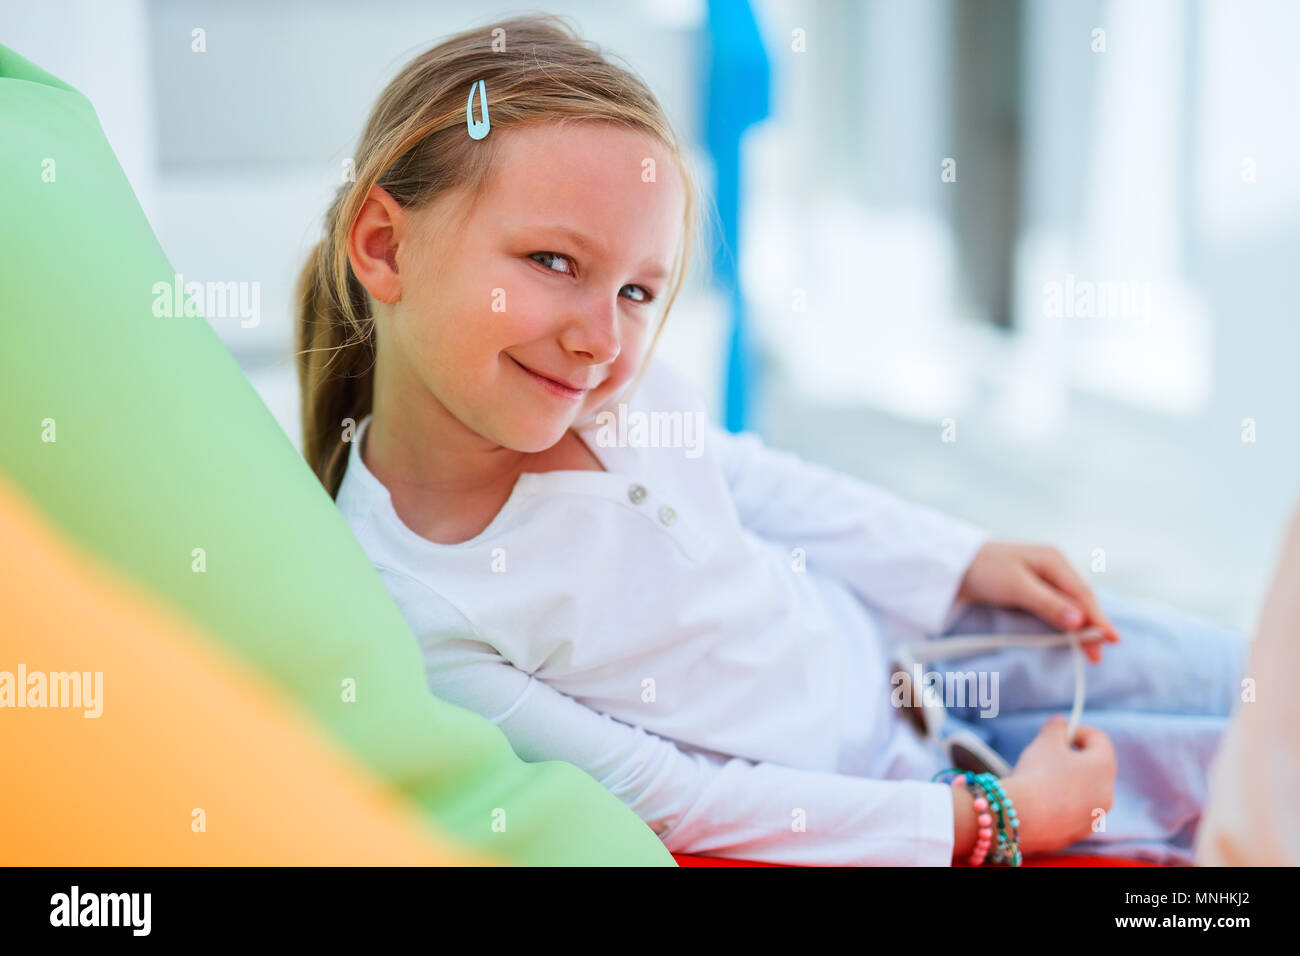 Adorable little girl on a colorful pillow in outdoor cafe on summer day - Stock Image